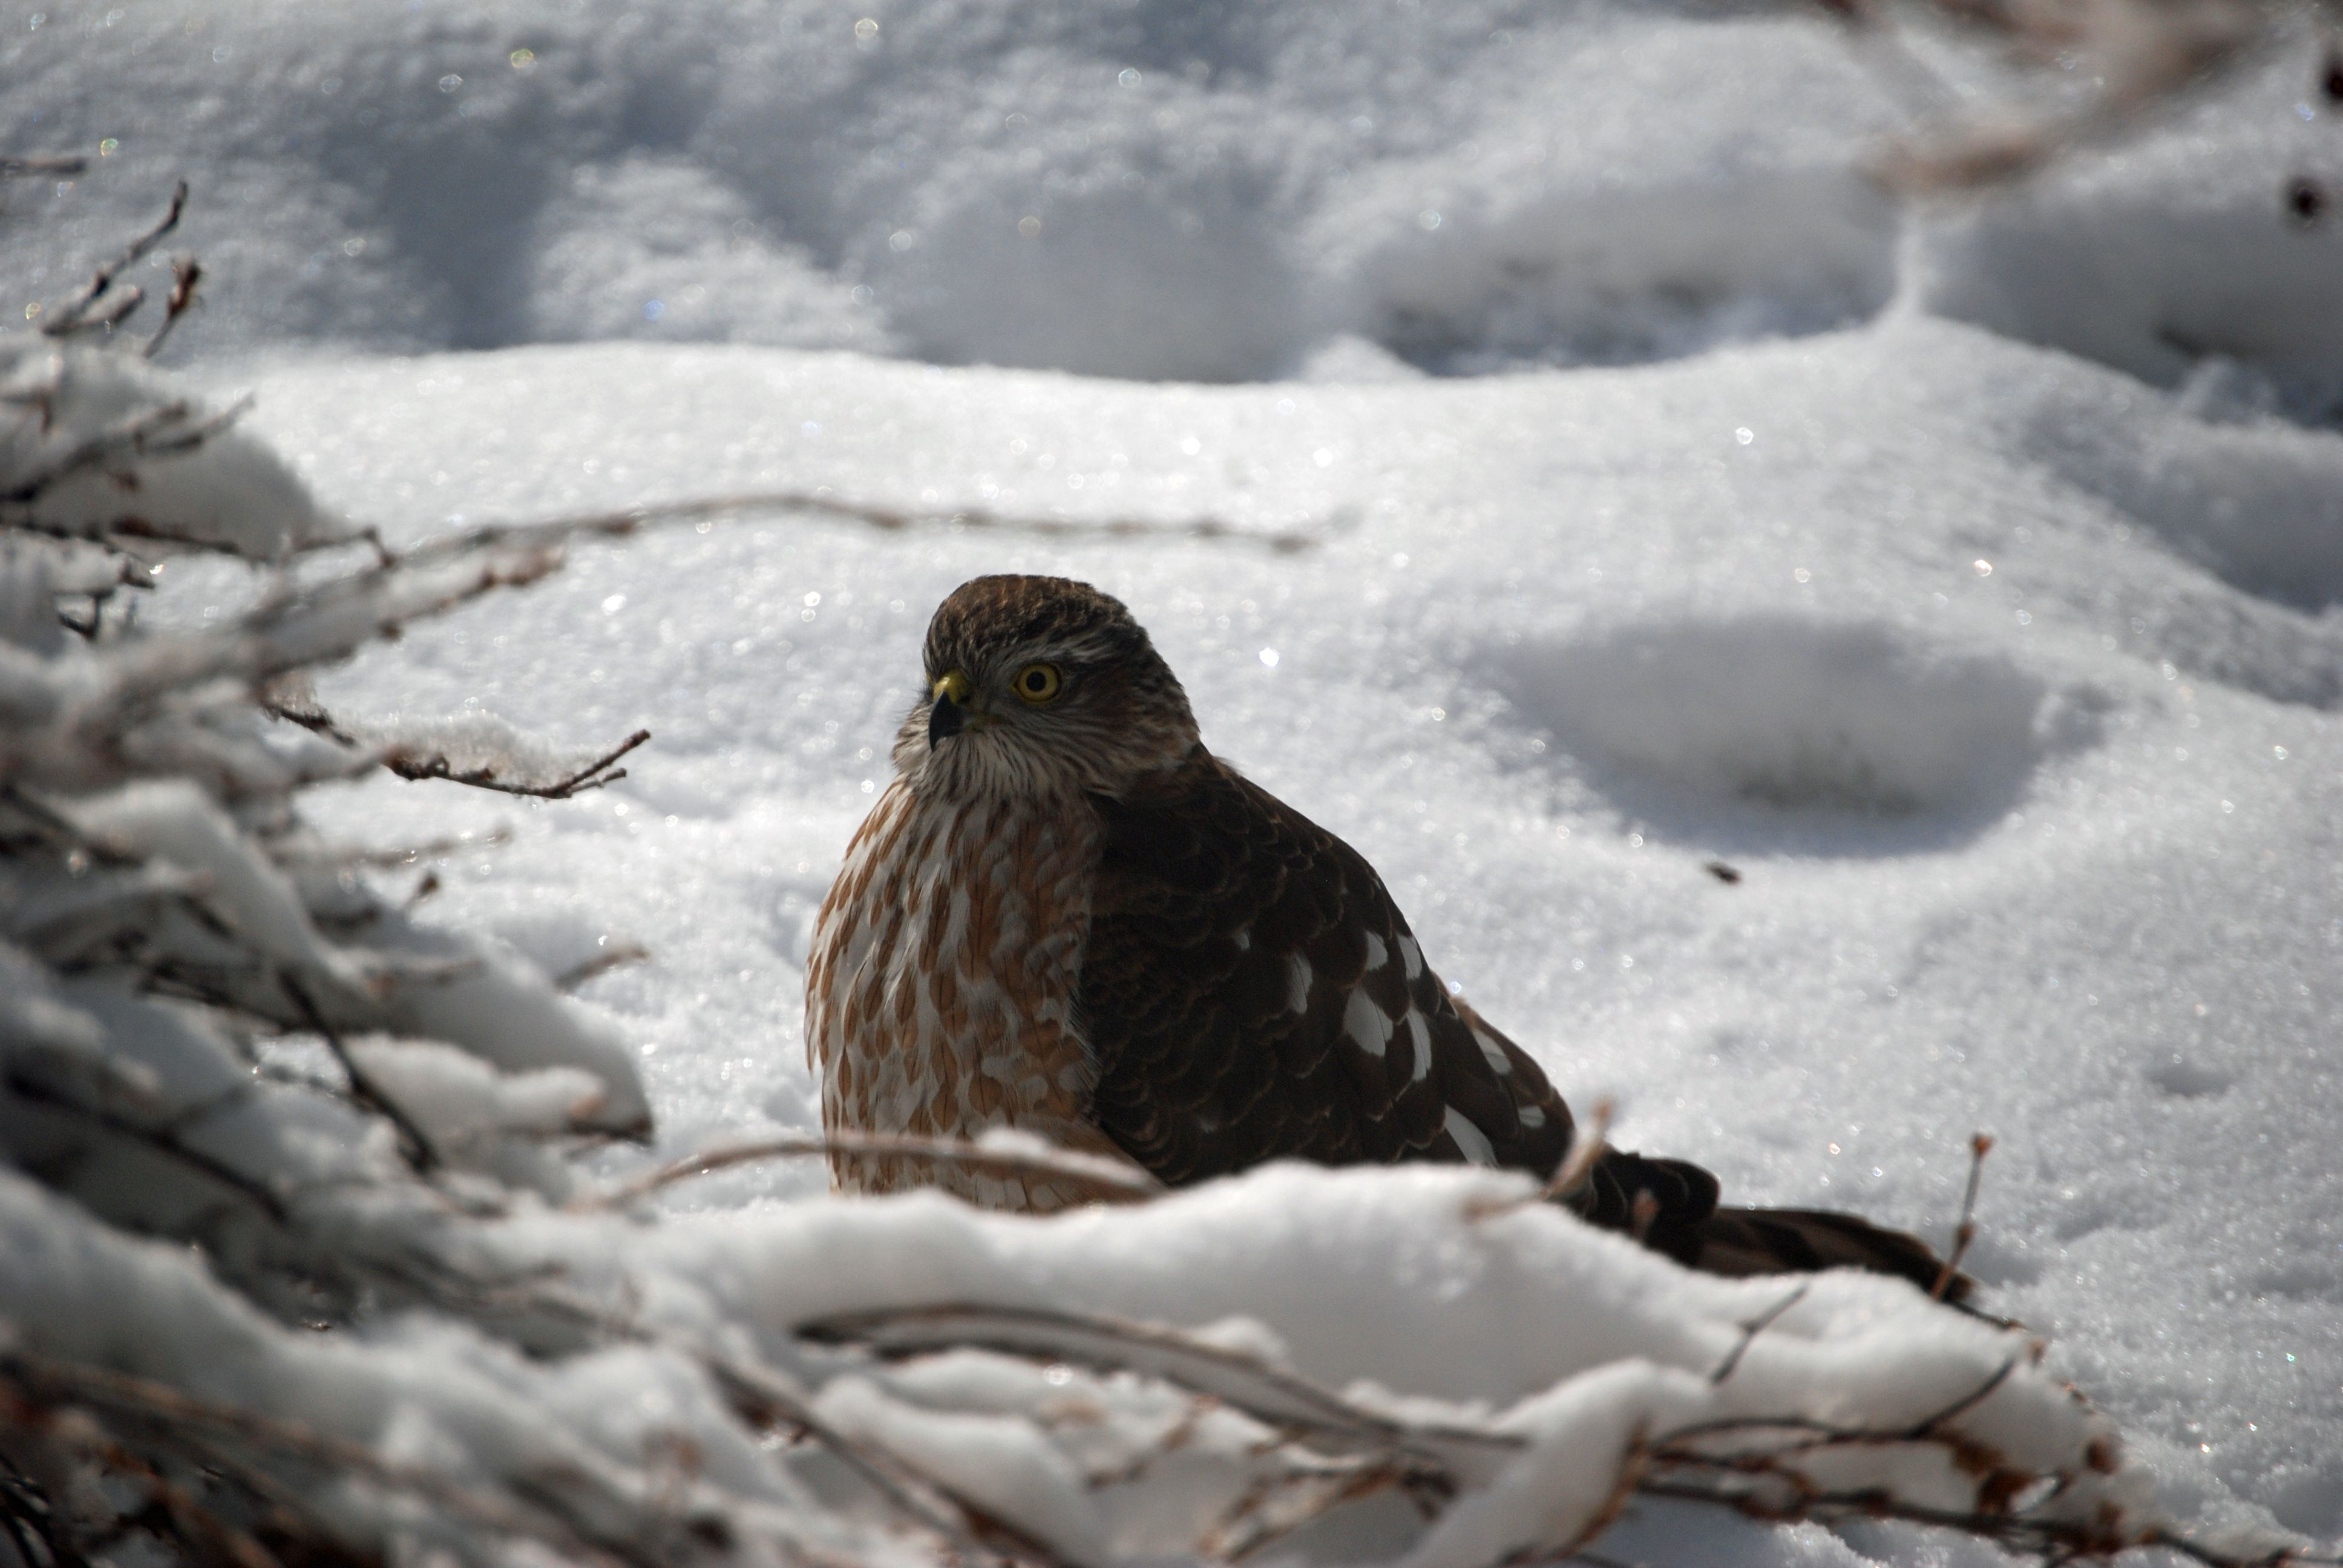 This is a Cooper's Hawk who visited our yard today in Colorado, lurking around the bird feeders and bushes where mice like to hide.  He's a beautiful predator!  11/11/12